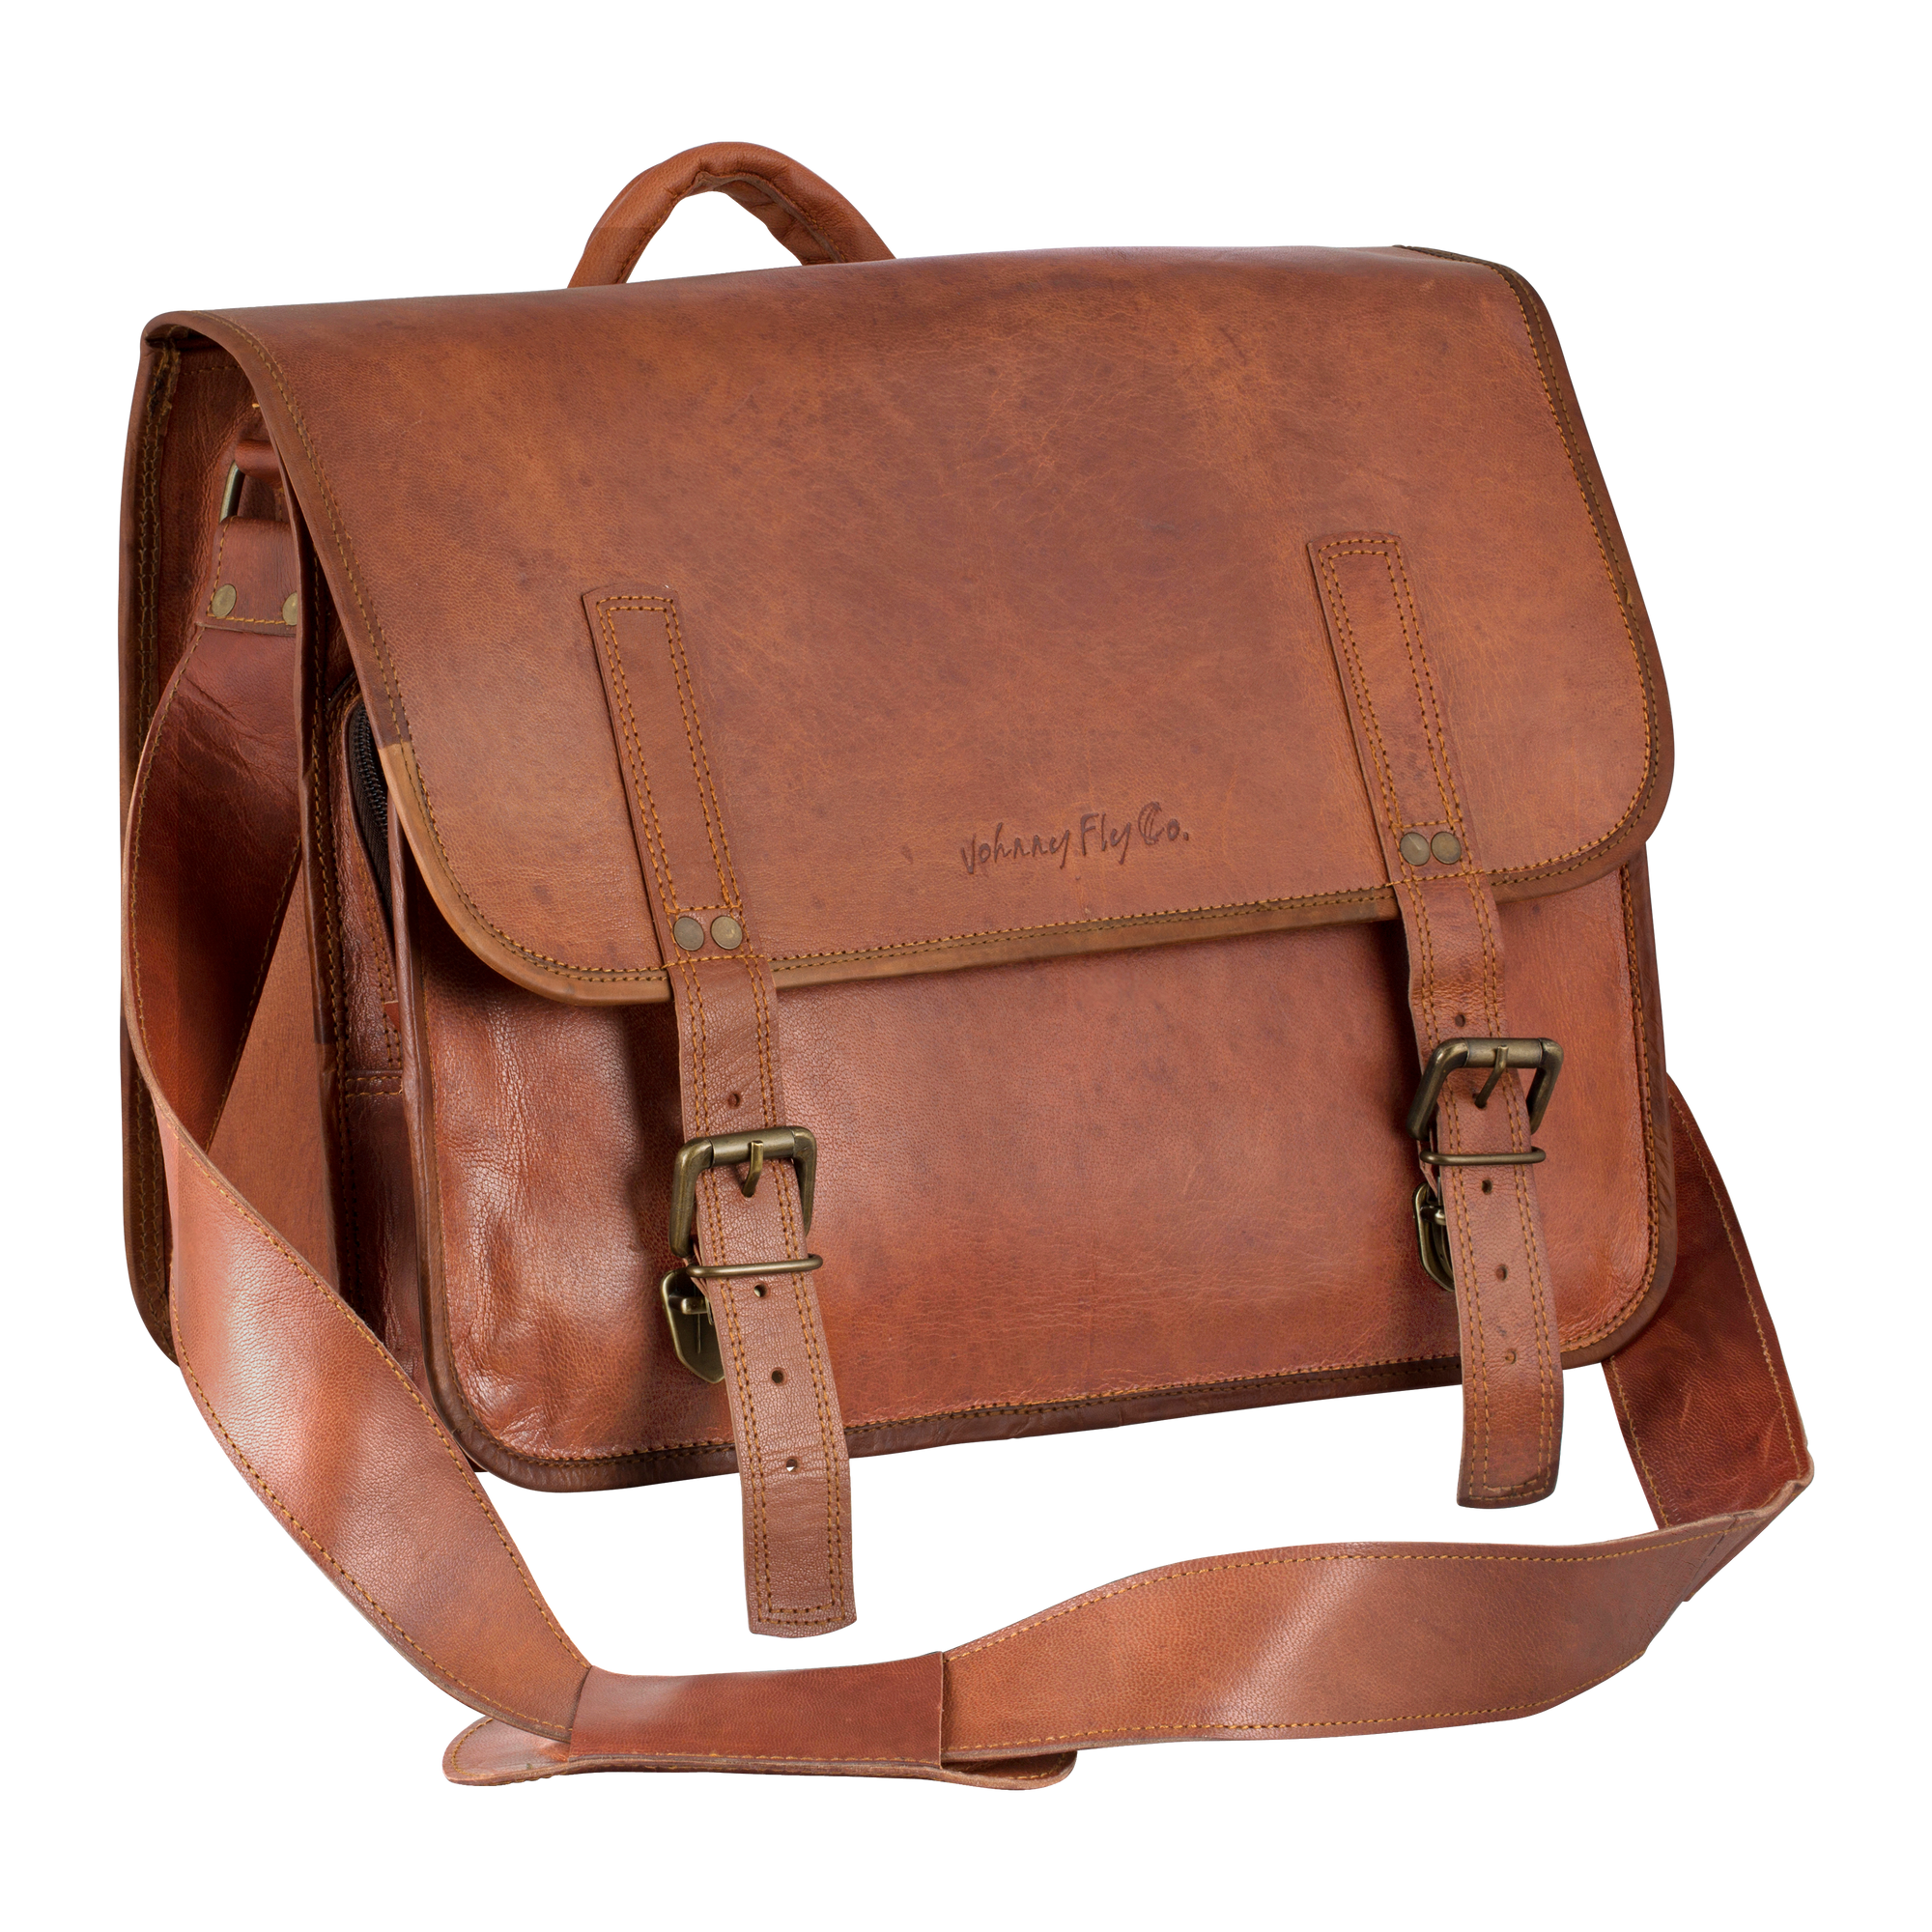 Johnny Fly Studio Camera bag Default Leather Bags